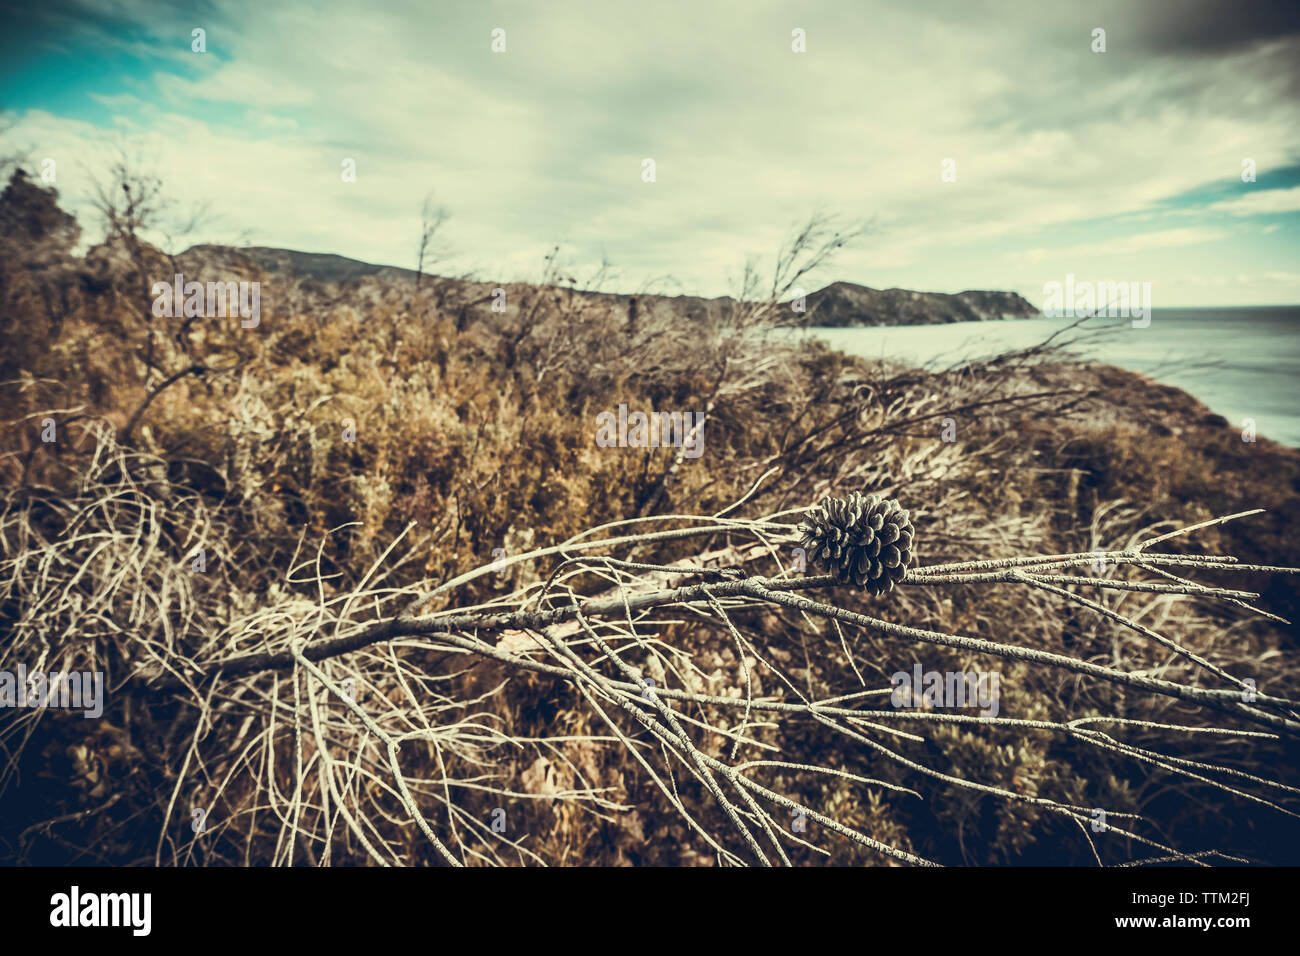 Close-up of dried plants at beach against cloudy sky - Stock Image